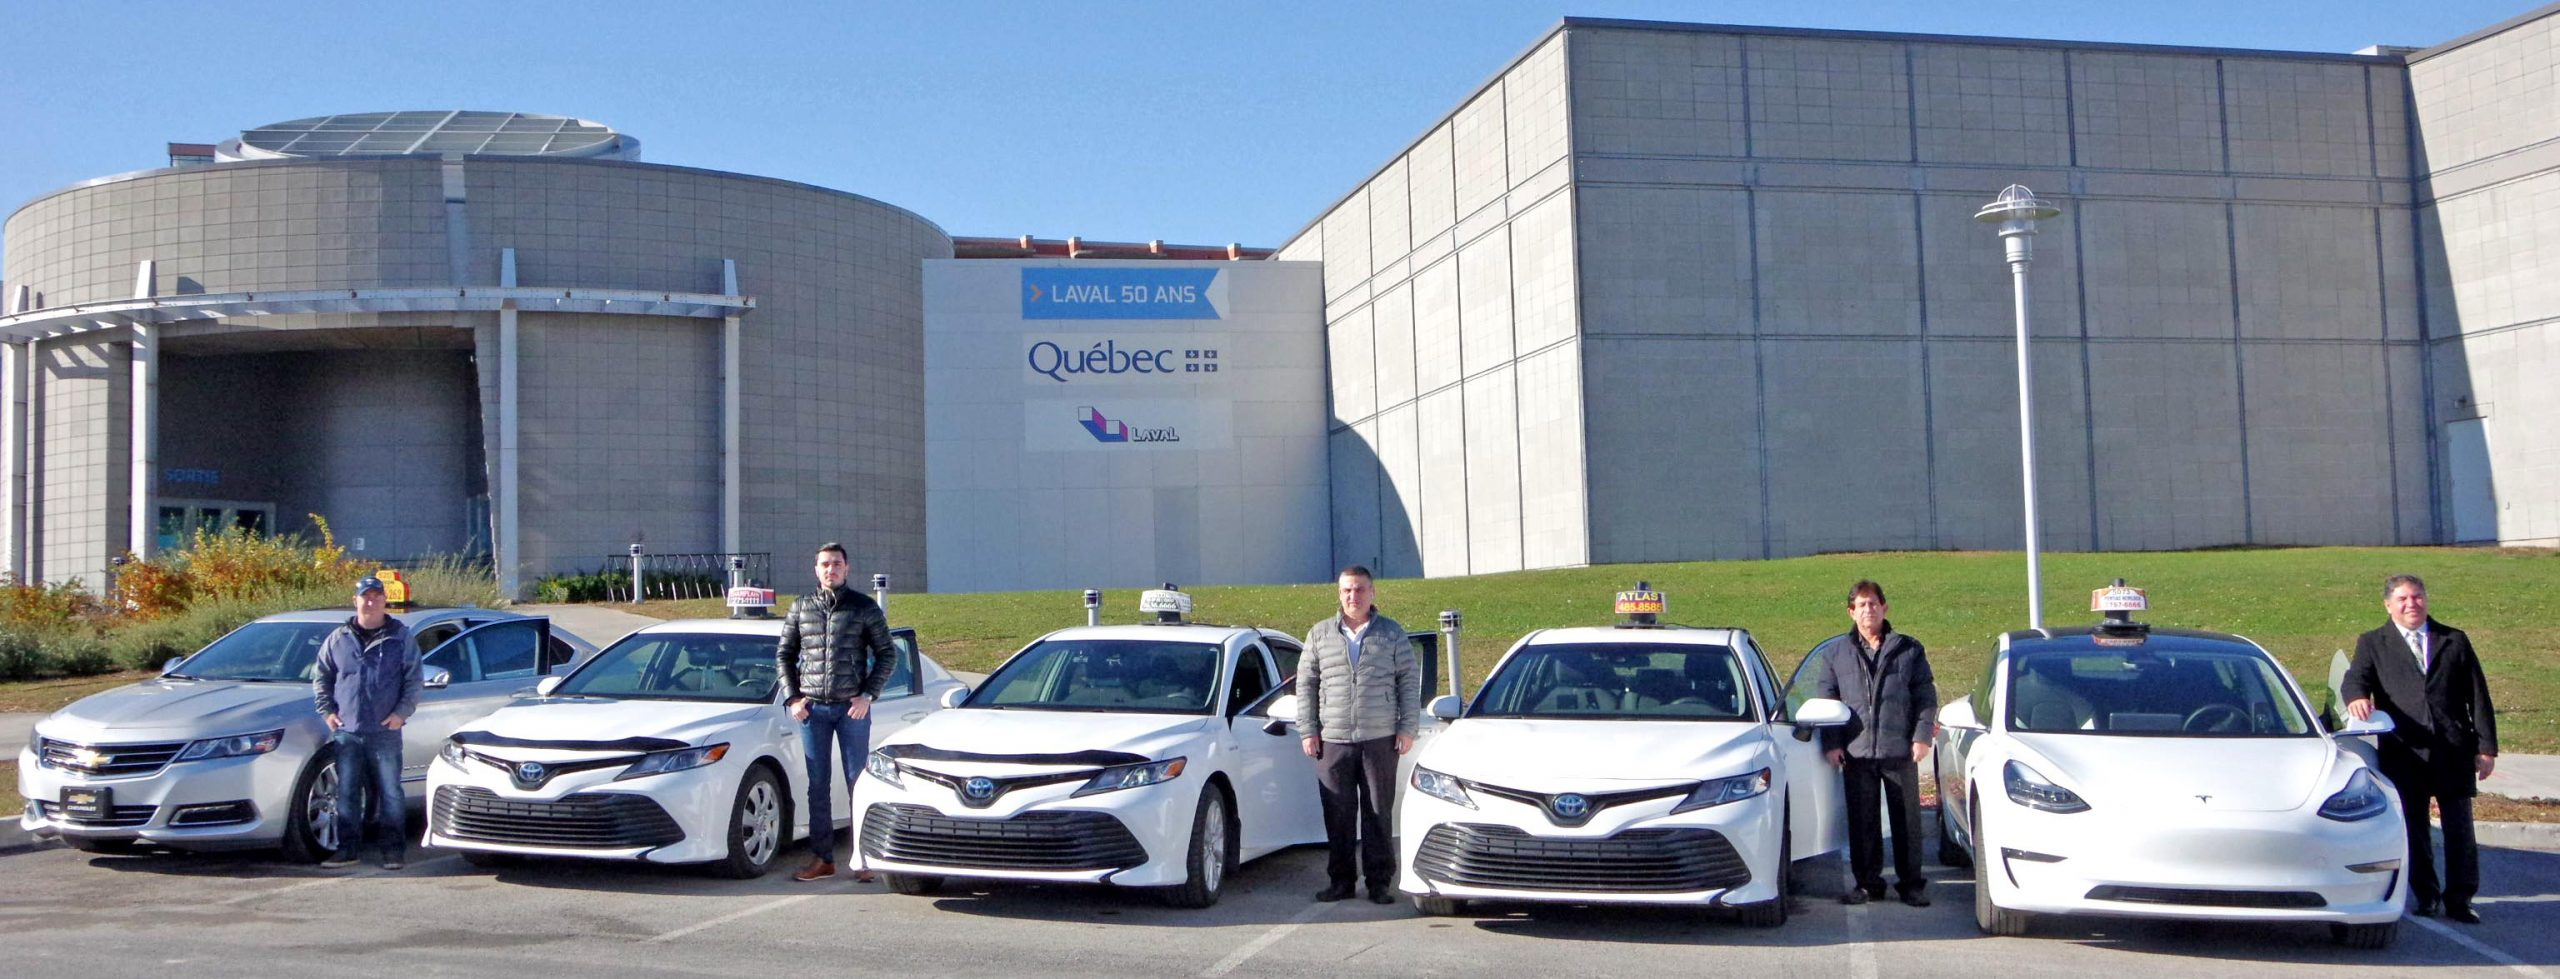 A new day dawns for the Montreal region's taxi services